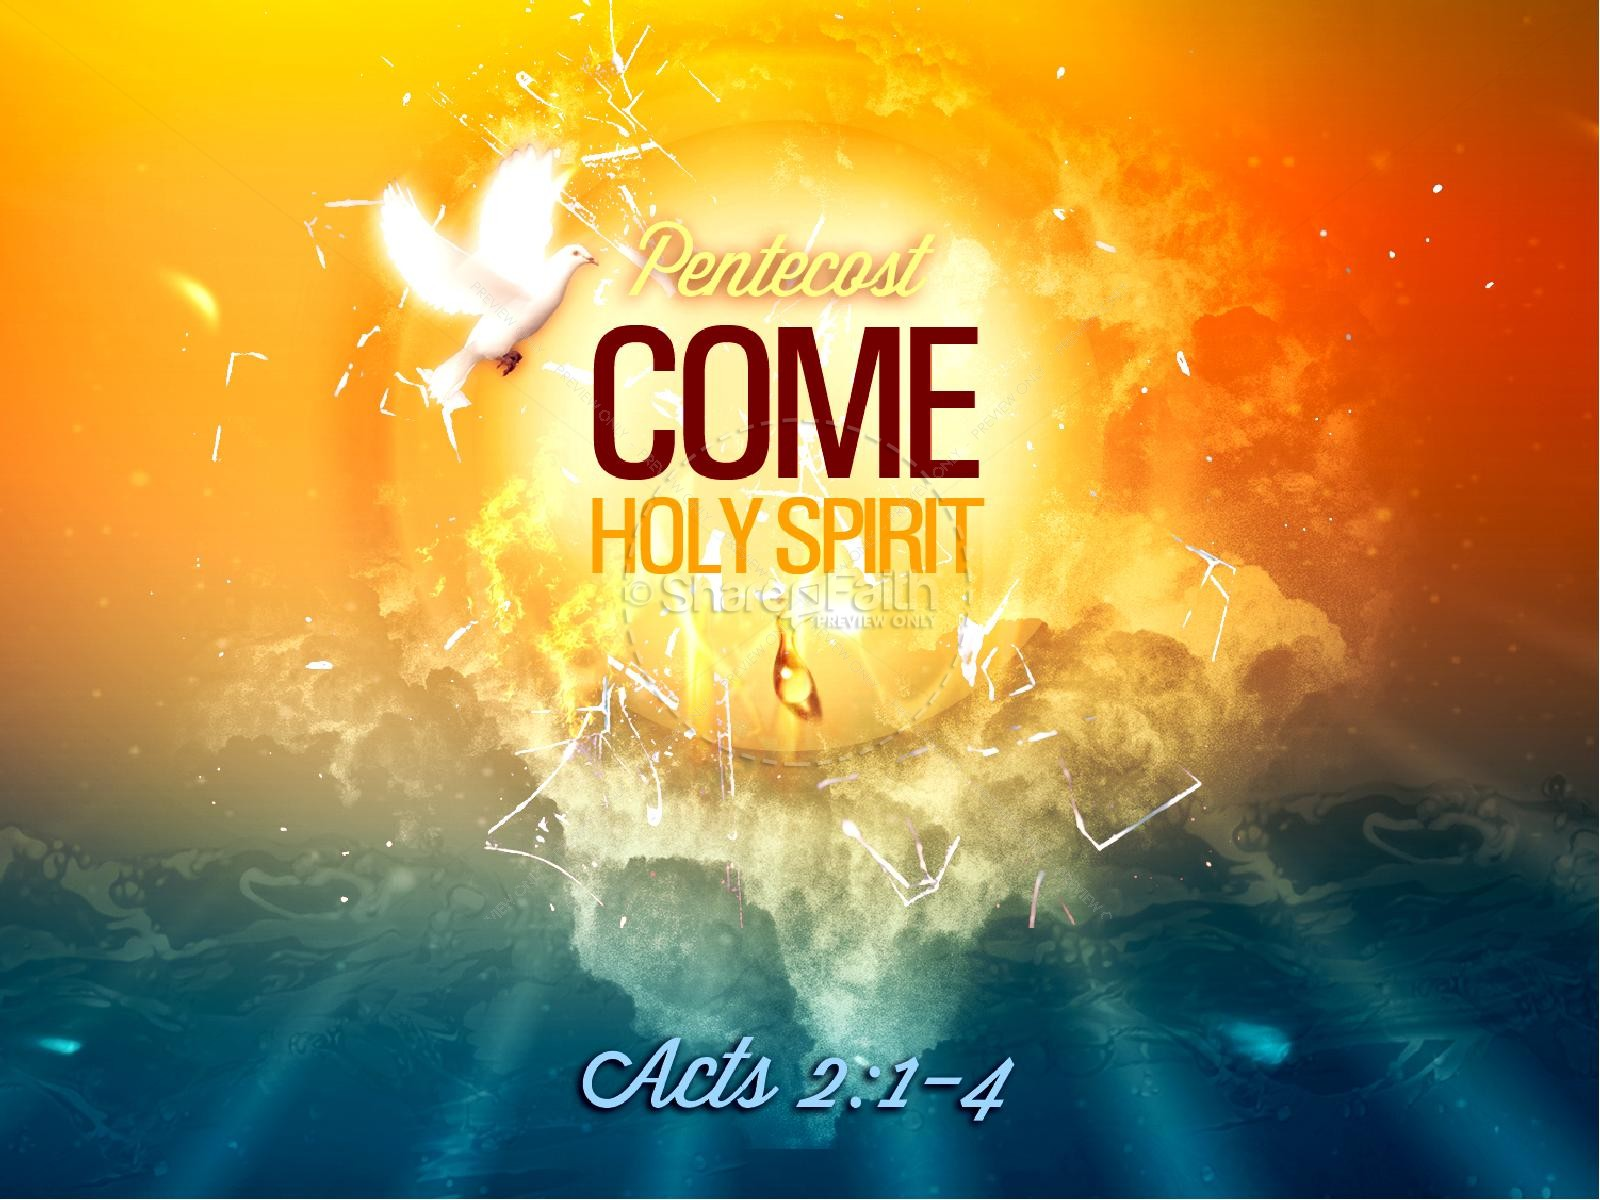 Pentecost Come Holy Spirit Christian PowerPoint